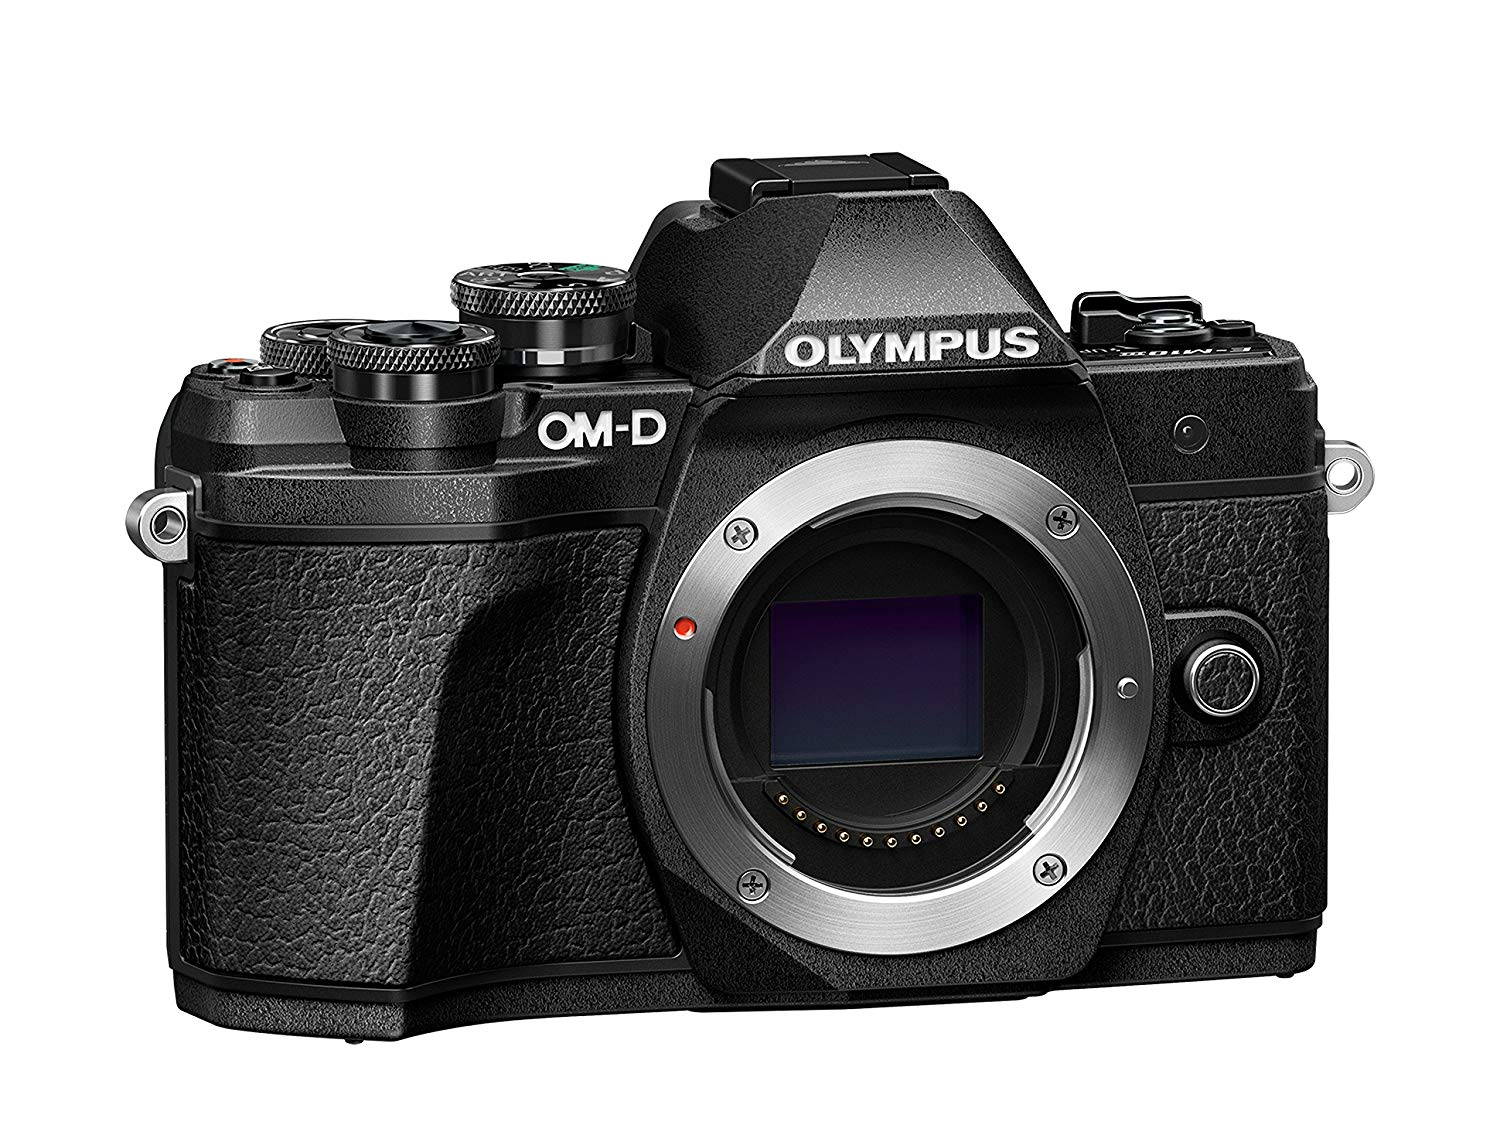 Olympus OM-D E-M10 Mark III Review in 2019